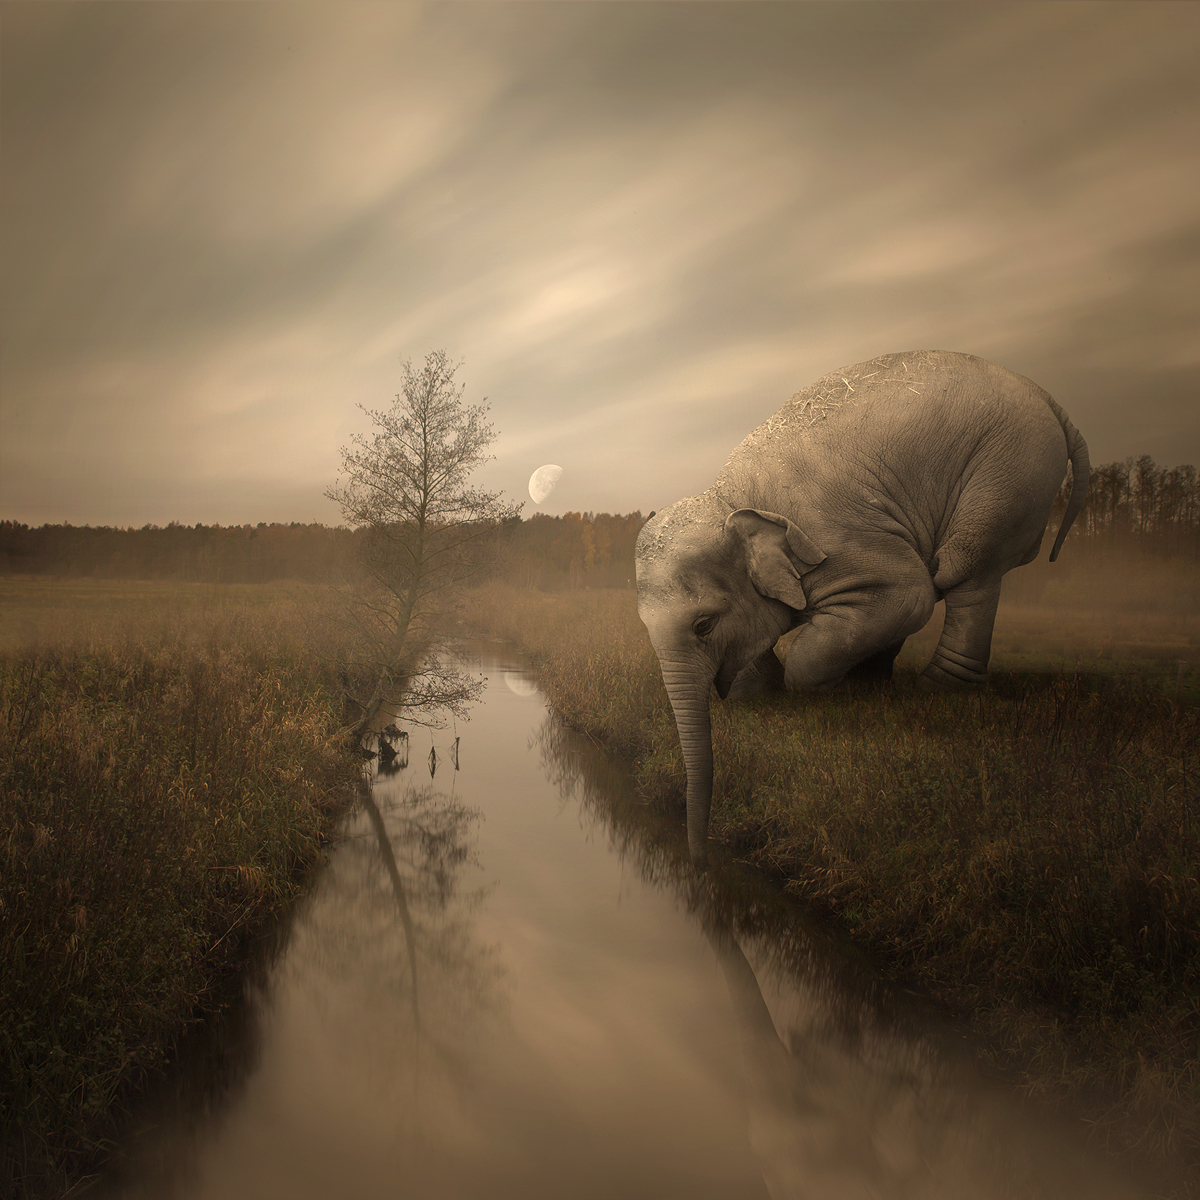 fine art prints, photo manipulation, digital art, poland